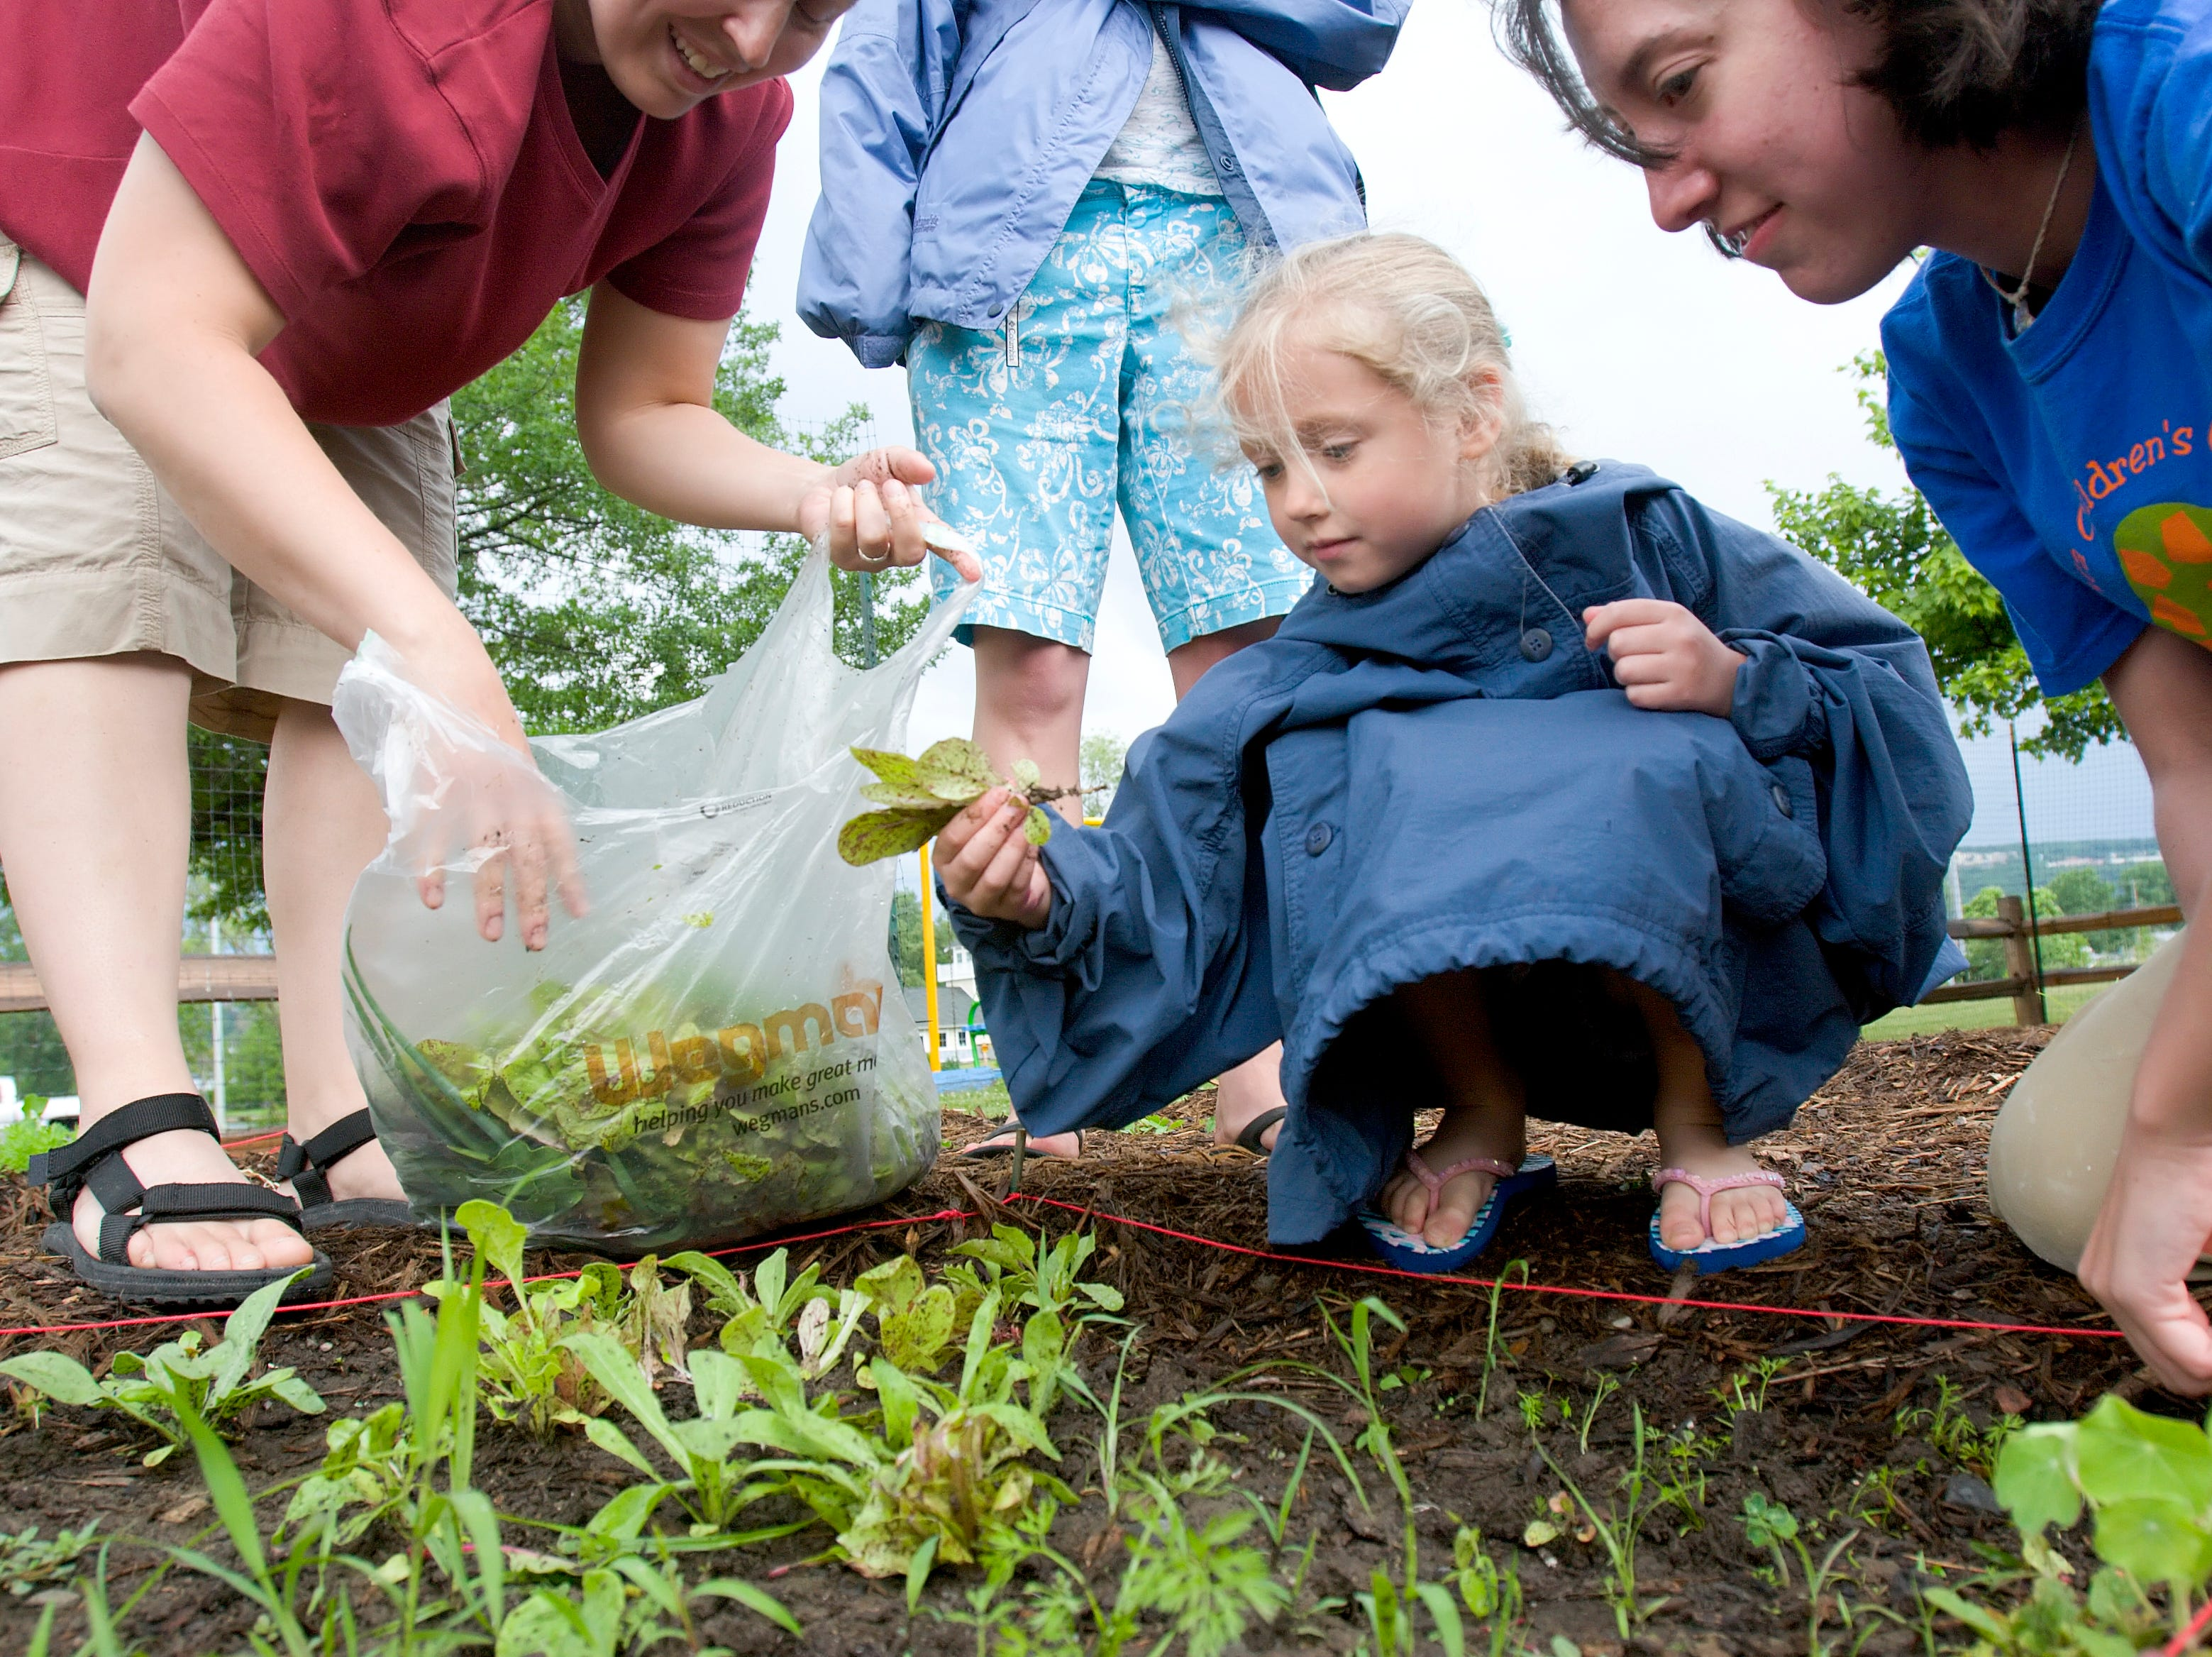 2008: Leah Wardlaw, center, picks salad vetegatables with her mother Dana, left, and her instructor Leigh Kalbacker at the Ithaca Children's Garden on Monday afternoon. Participants picked greens, washed them, and then had a sald eating party.